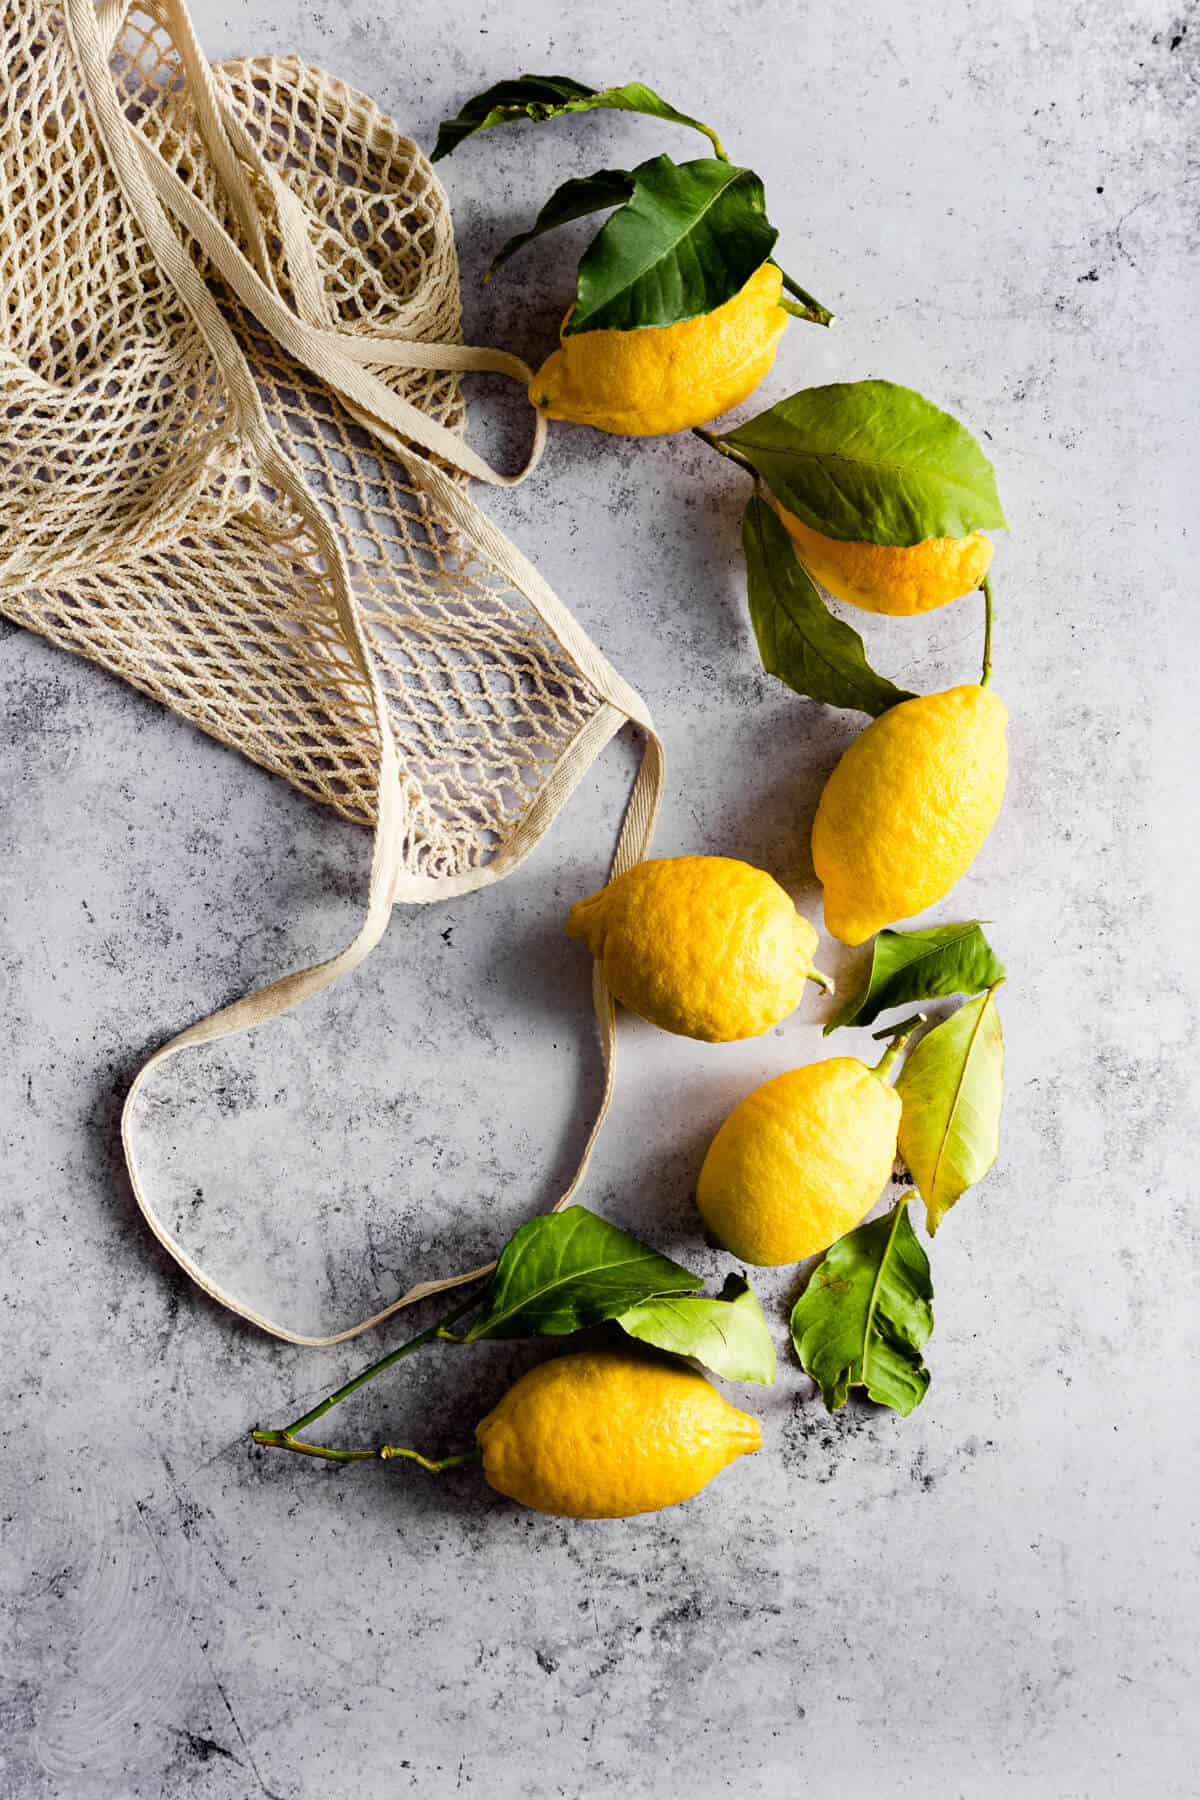 top view of some loose lemons